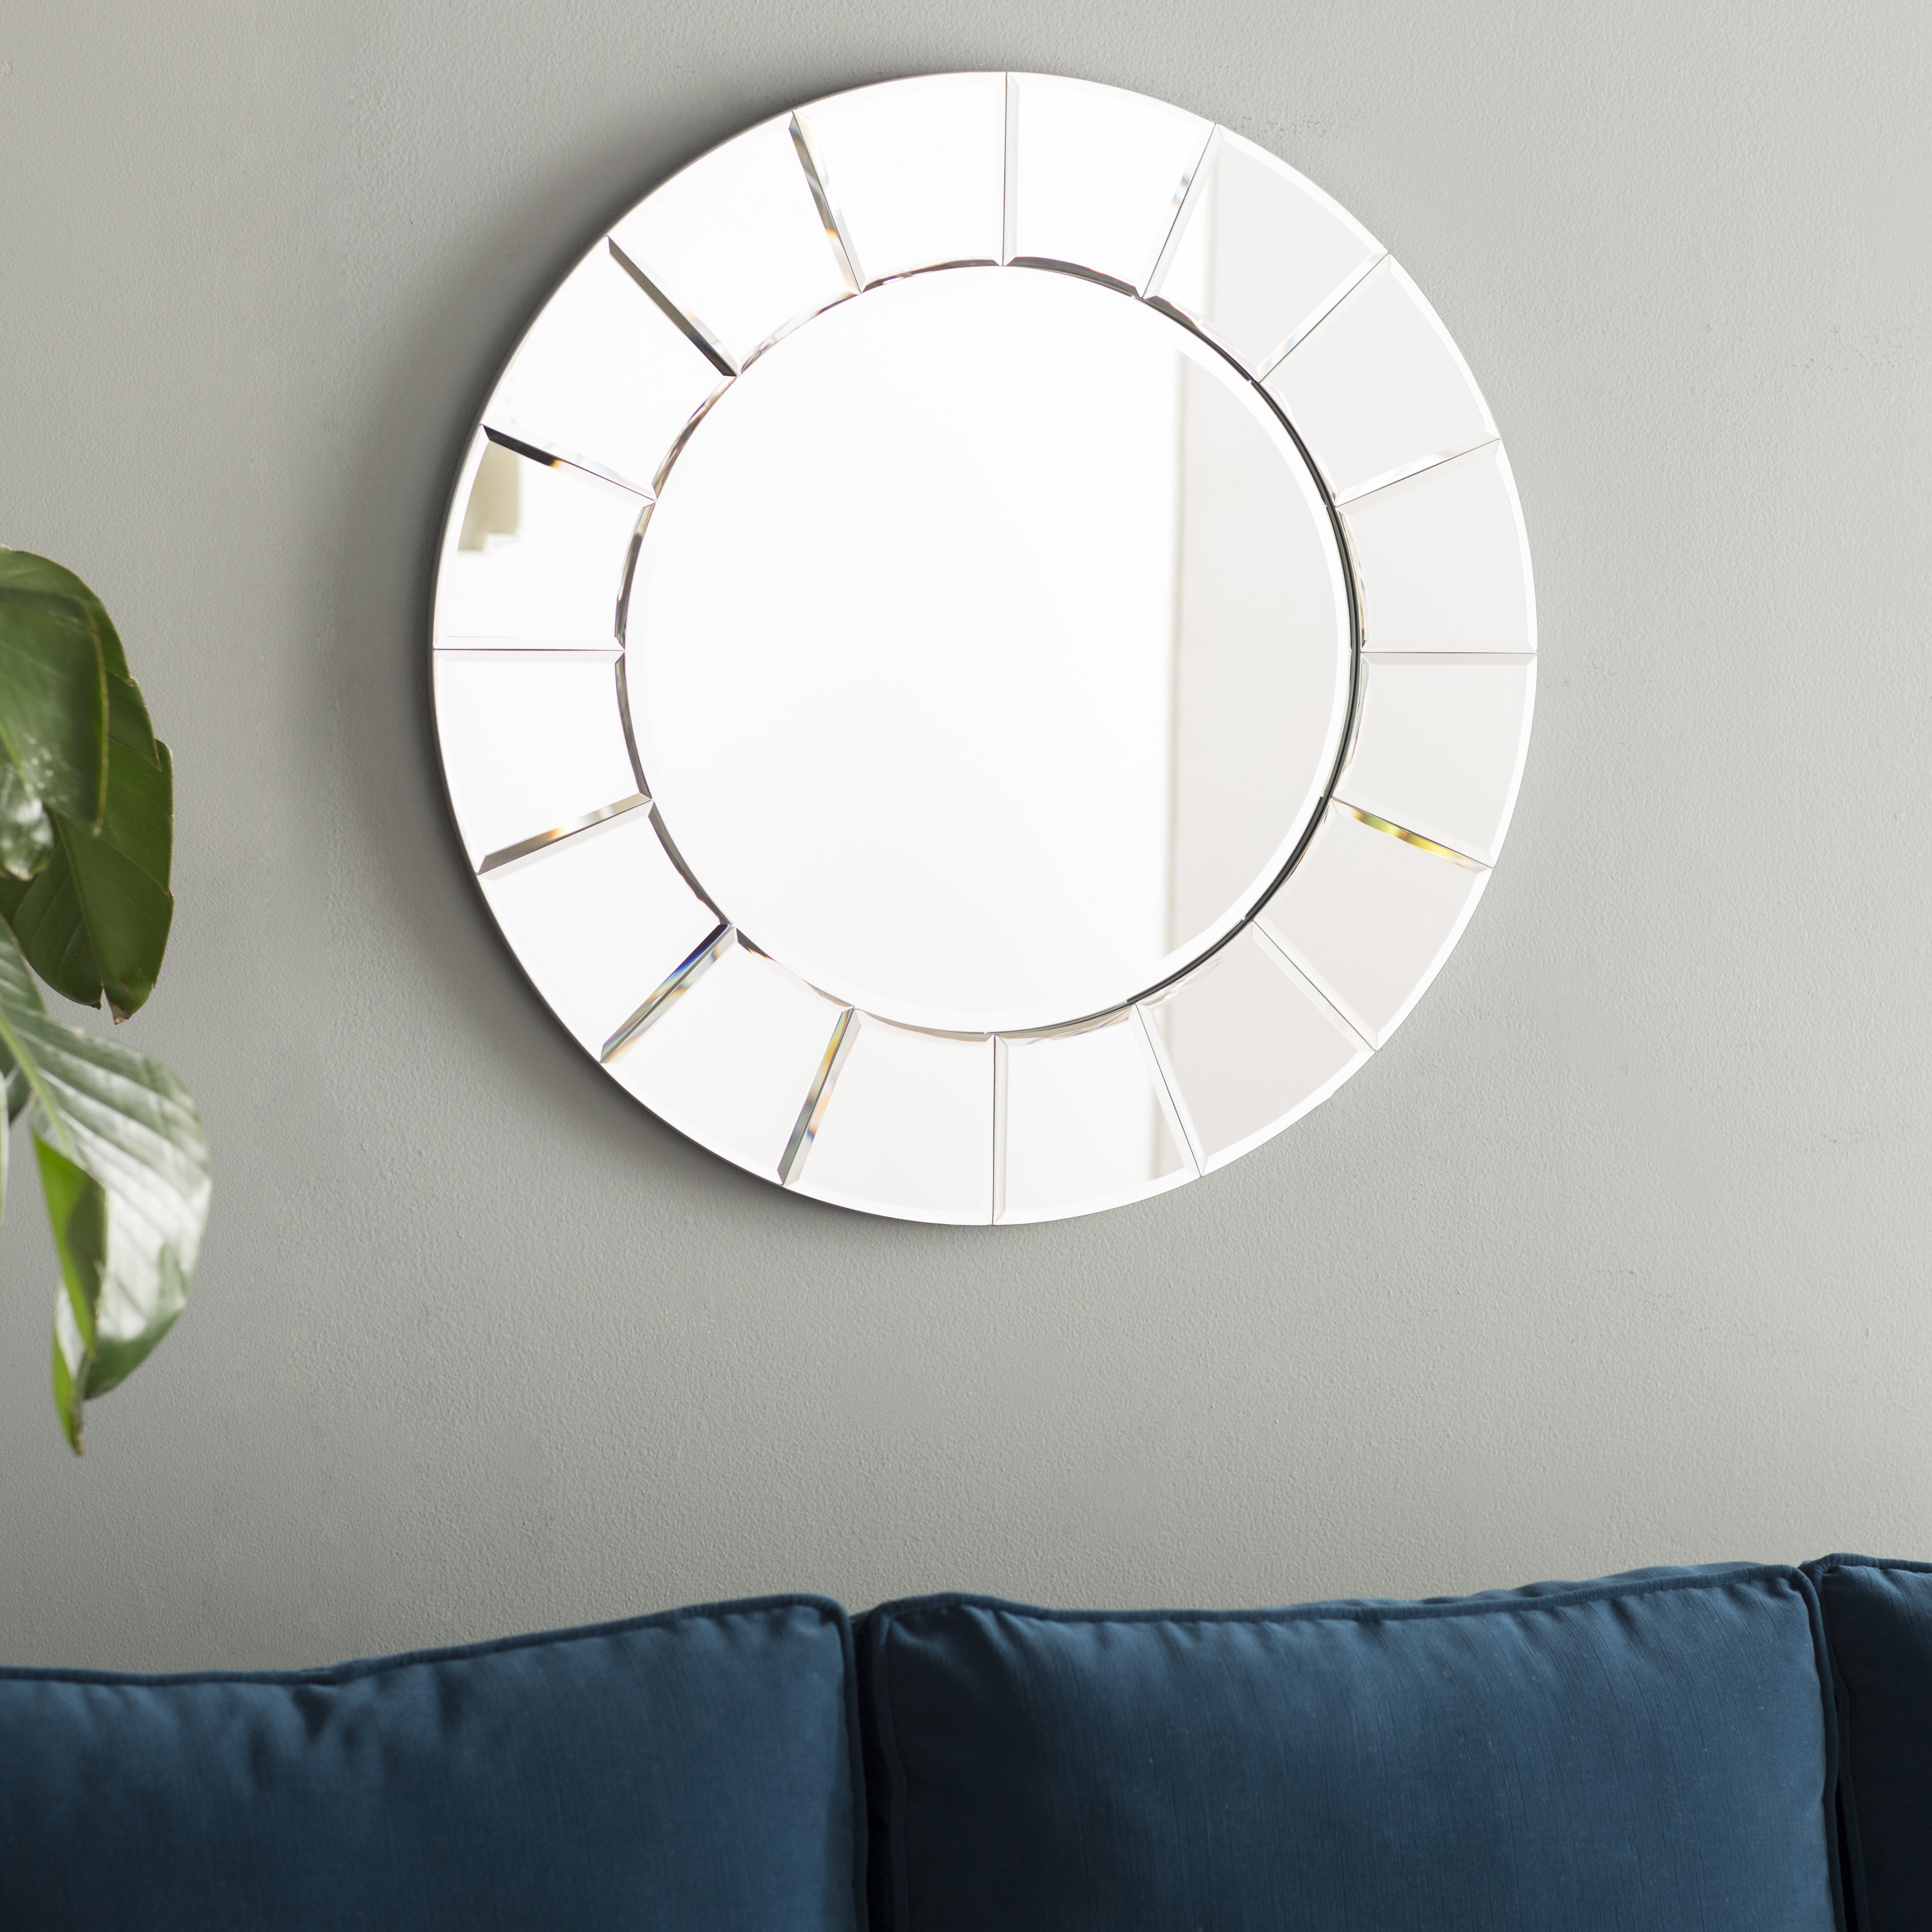 Clover Shaped Mirrors | Wayfair For Sun Shaped Wall Mirrors (Image 4 of 20)